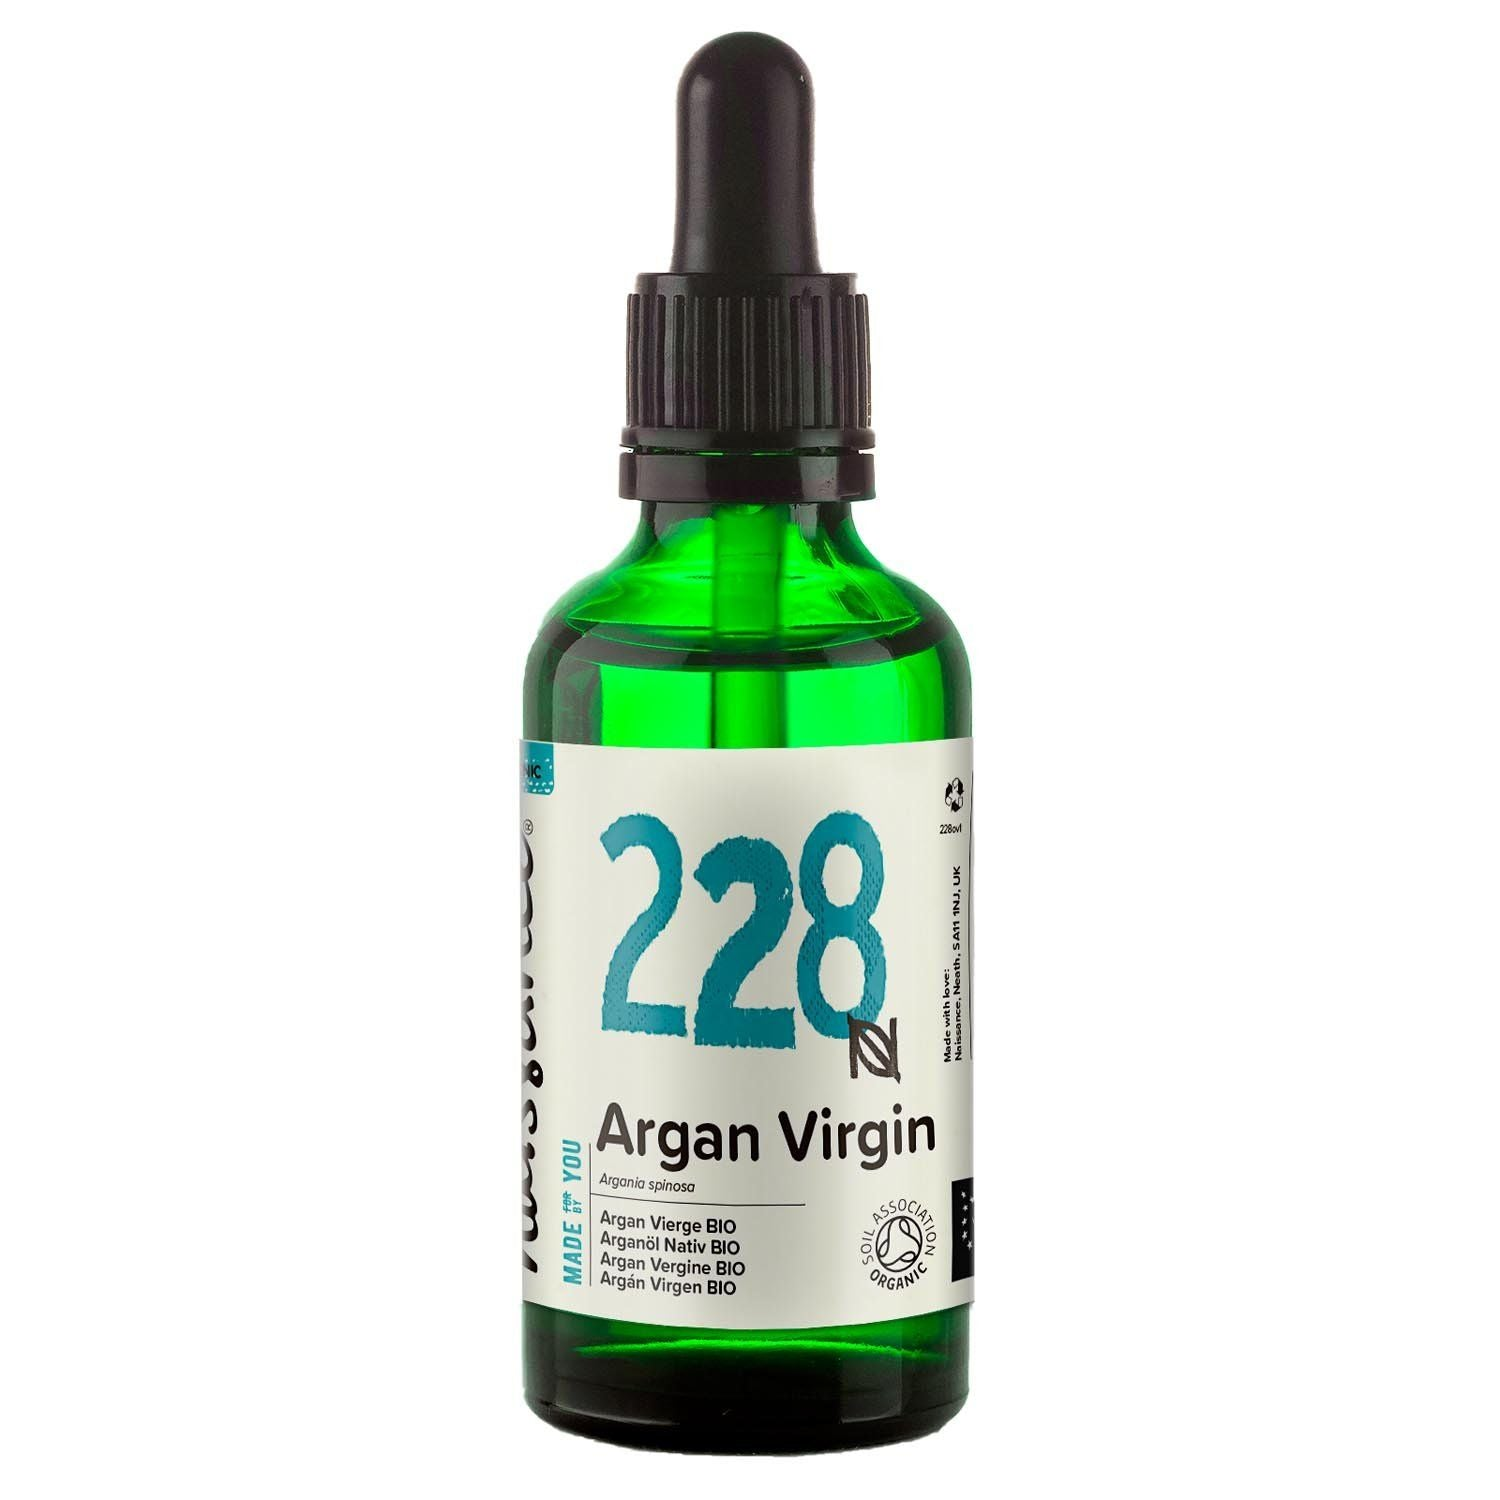 Argan Virgin Organic Oil